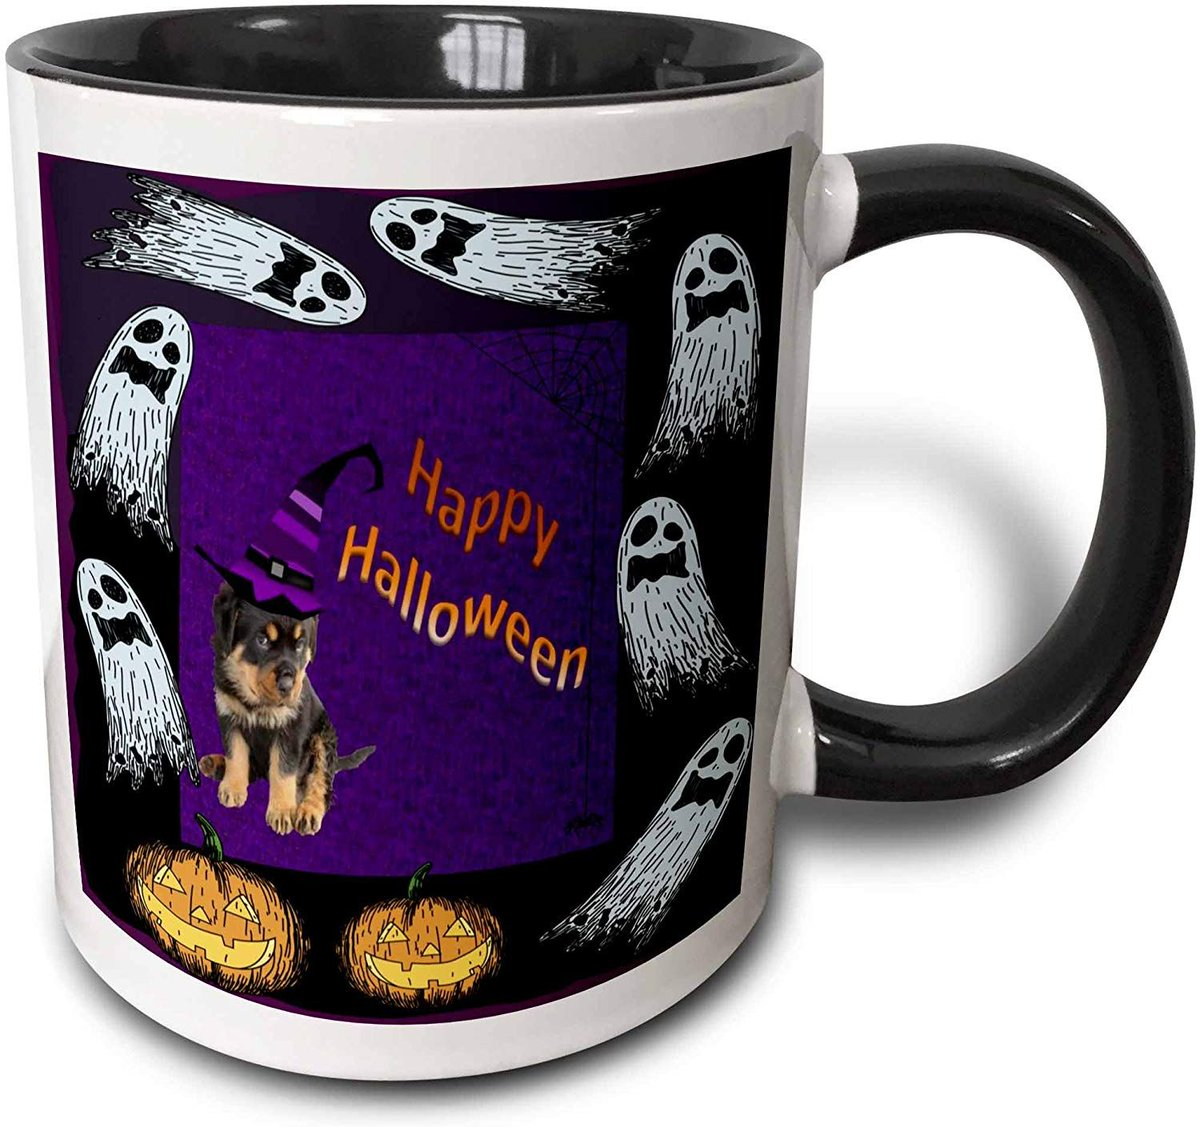 #Ghosts and #Pumpkins #rottweiler #rottielover  #rottiefun #rottiehalloween A #perfectgift and #mug for any occasion. For coffee if hotchocolate is not your cupoftea.  A #fun and #unique #giftidea. @3DRose #ATSocialMedia  ..  via @amazon